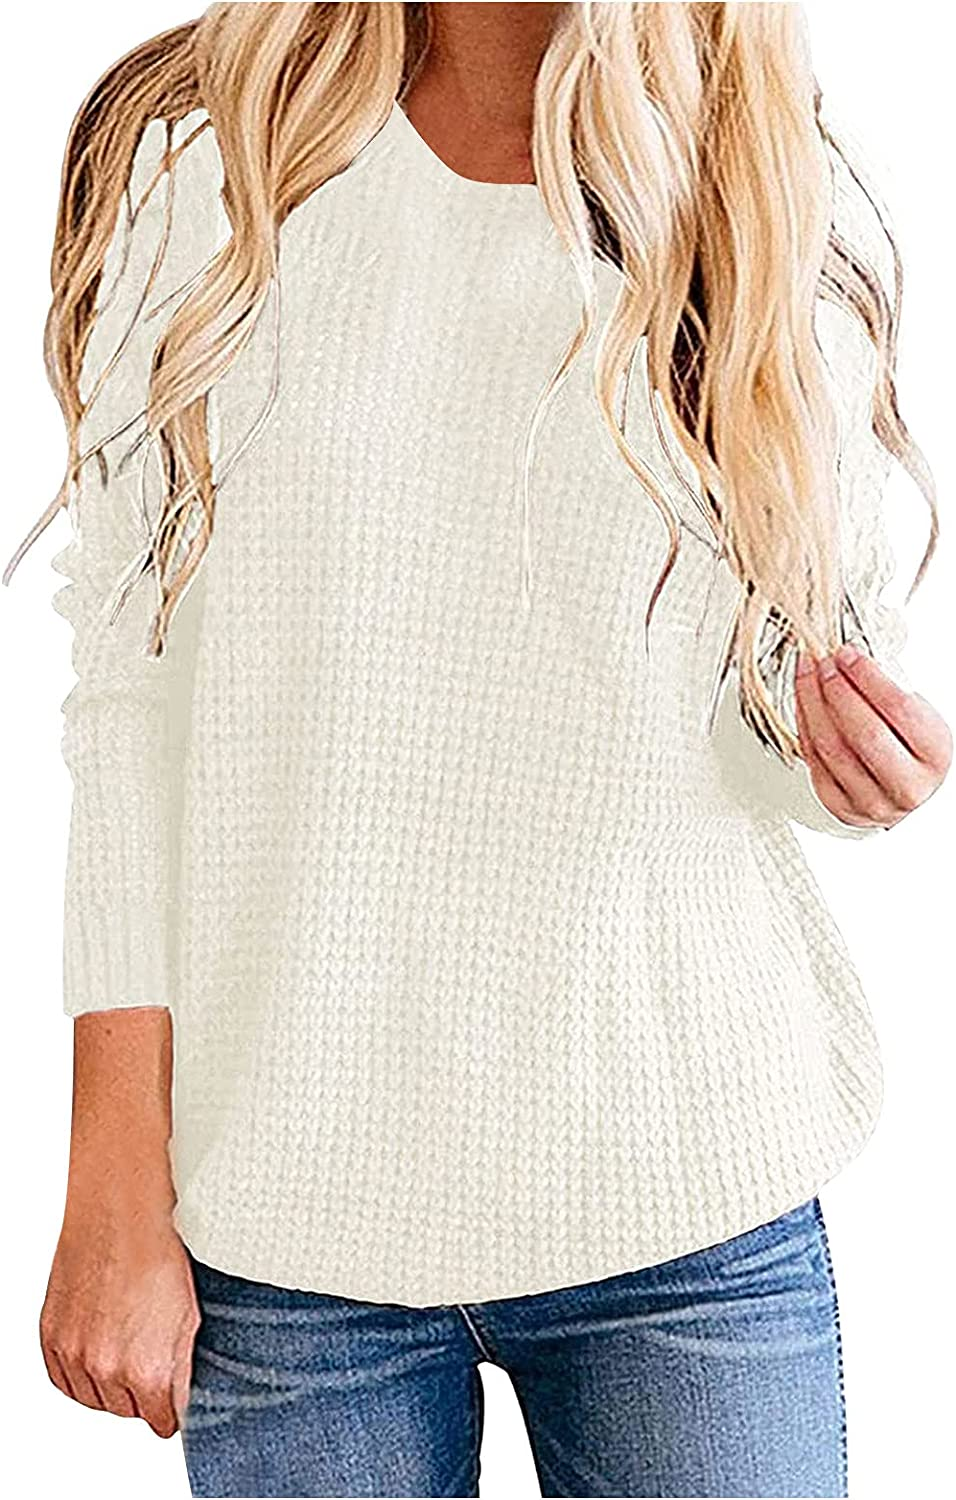 Womens Sweaters Plus Size Tops Long Sleeve Round Neck Knit Casual Loose Oversized Pullover T-Shirts